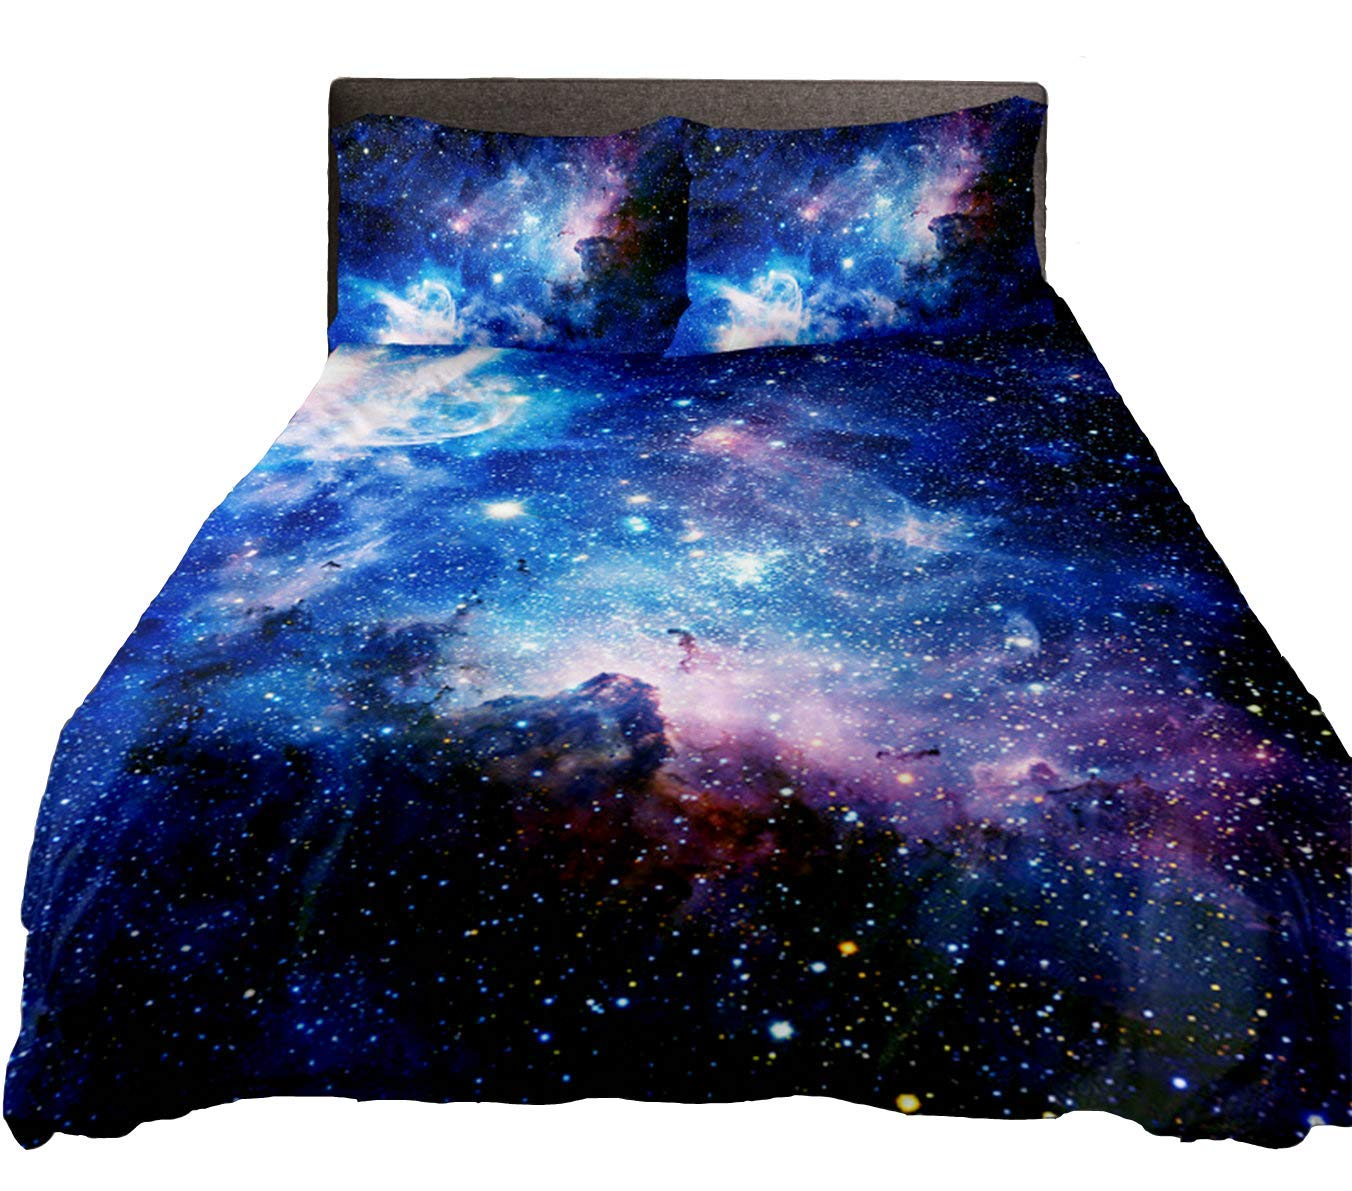 Anlye Galaxy Duvet Cover Queen Size 3D Print Purple Space Sheet Queen Size Purple Nebula Never Fade Queen Size Outer Space Bedding Set(3PCS)